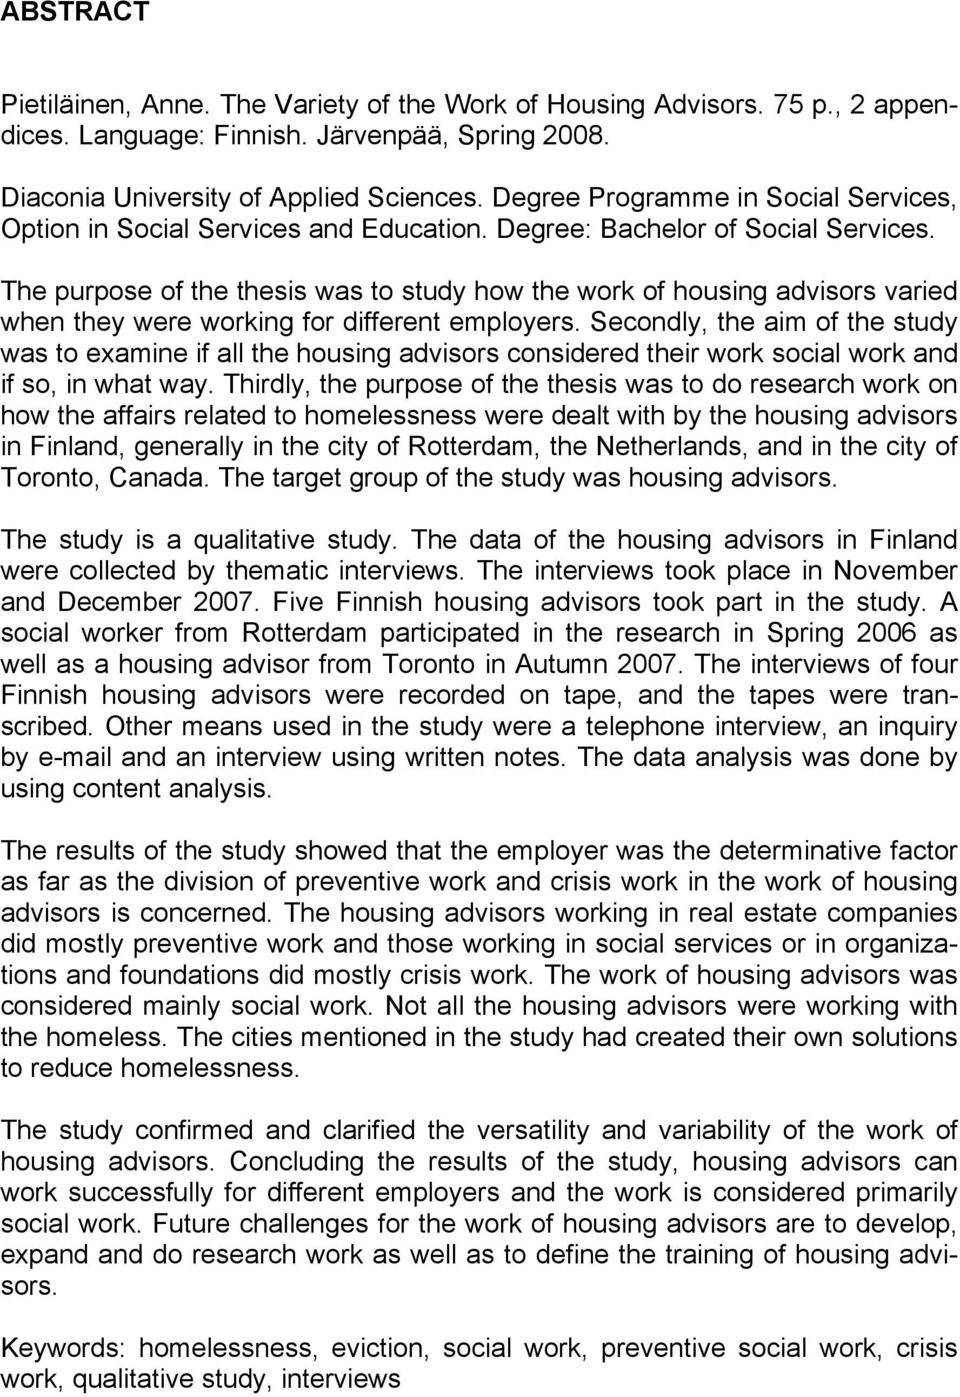 The purpose of the thesis was to study how the work of housing advisors varied when they were working for different employers.